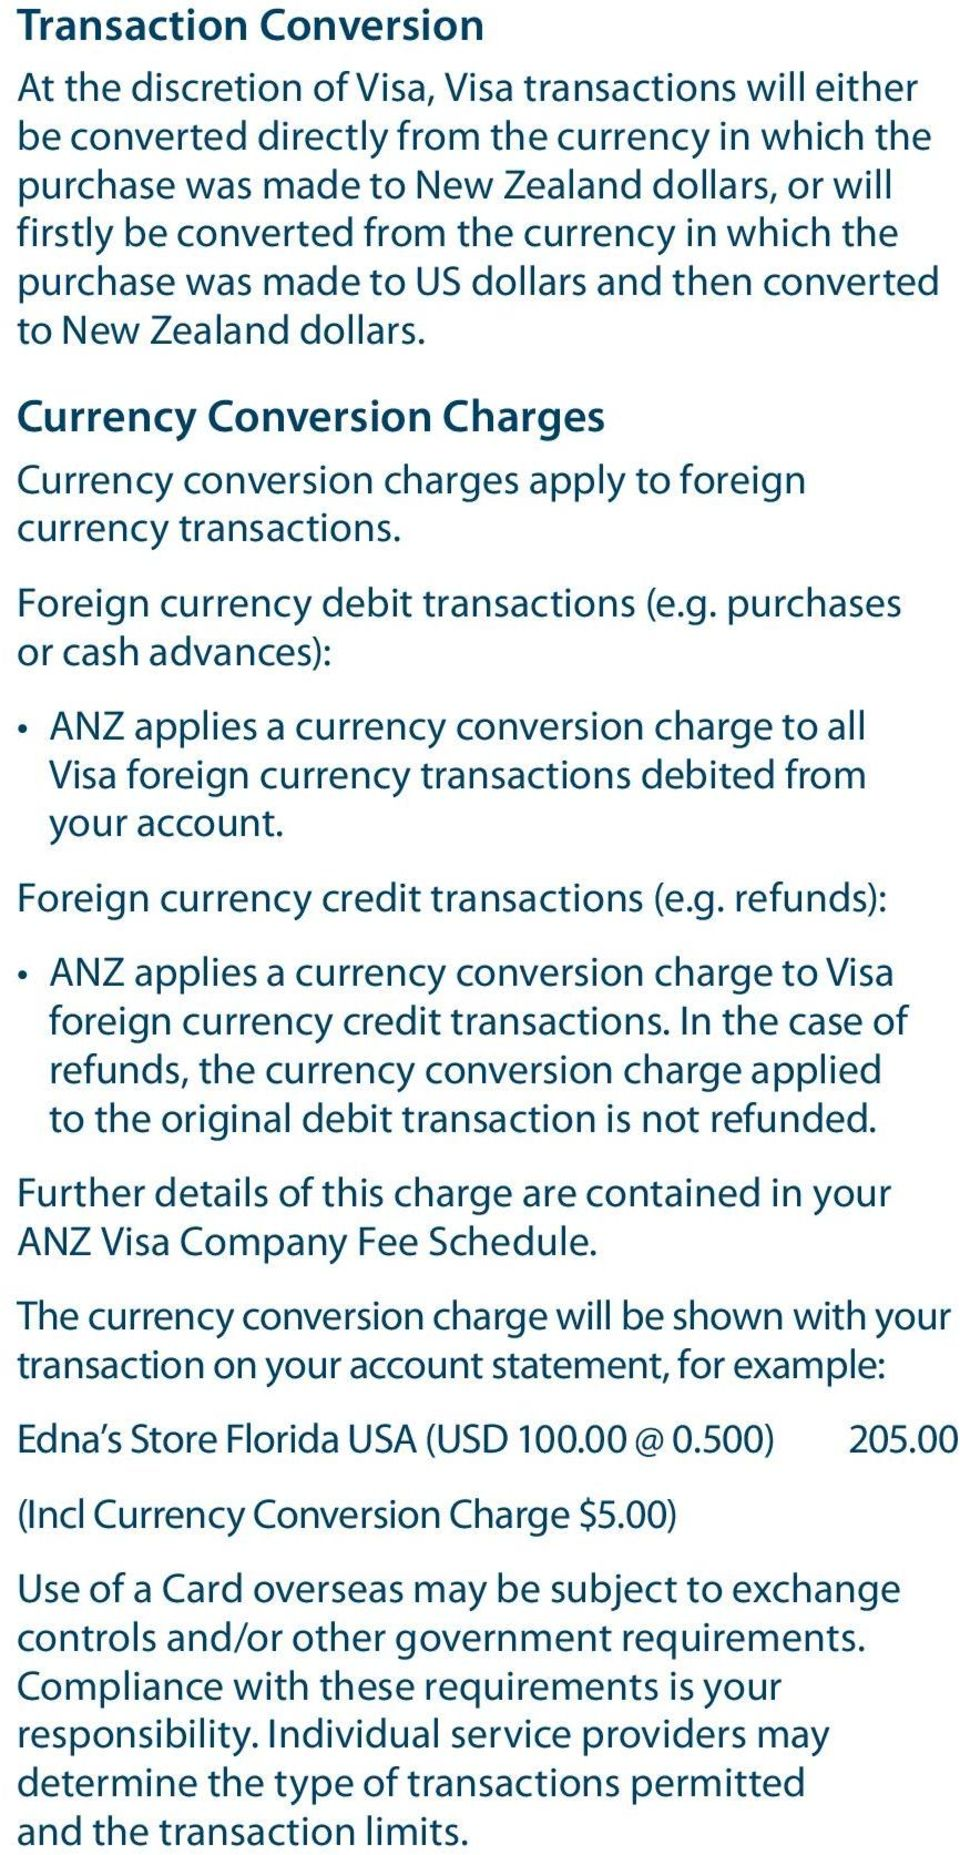 Currency Conversion Charges Currency conversion charges apply to foreign currency transactions. Foreign currency debit transactions (e.g. purchases or cash advances): ANZ applies a currency conversion charge to all Visa foreign currency transactions debited from your account.